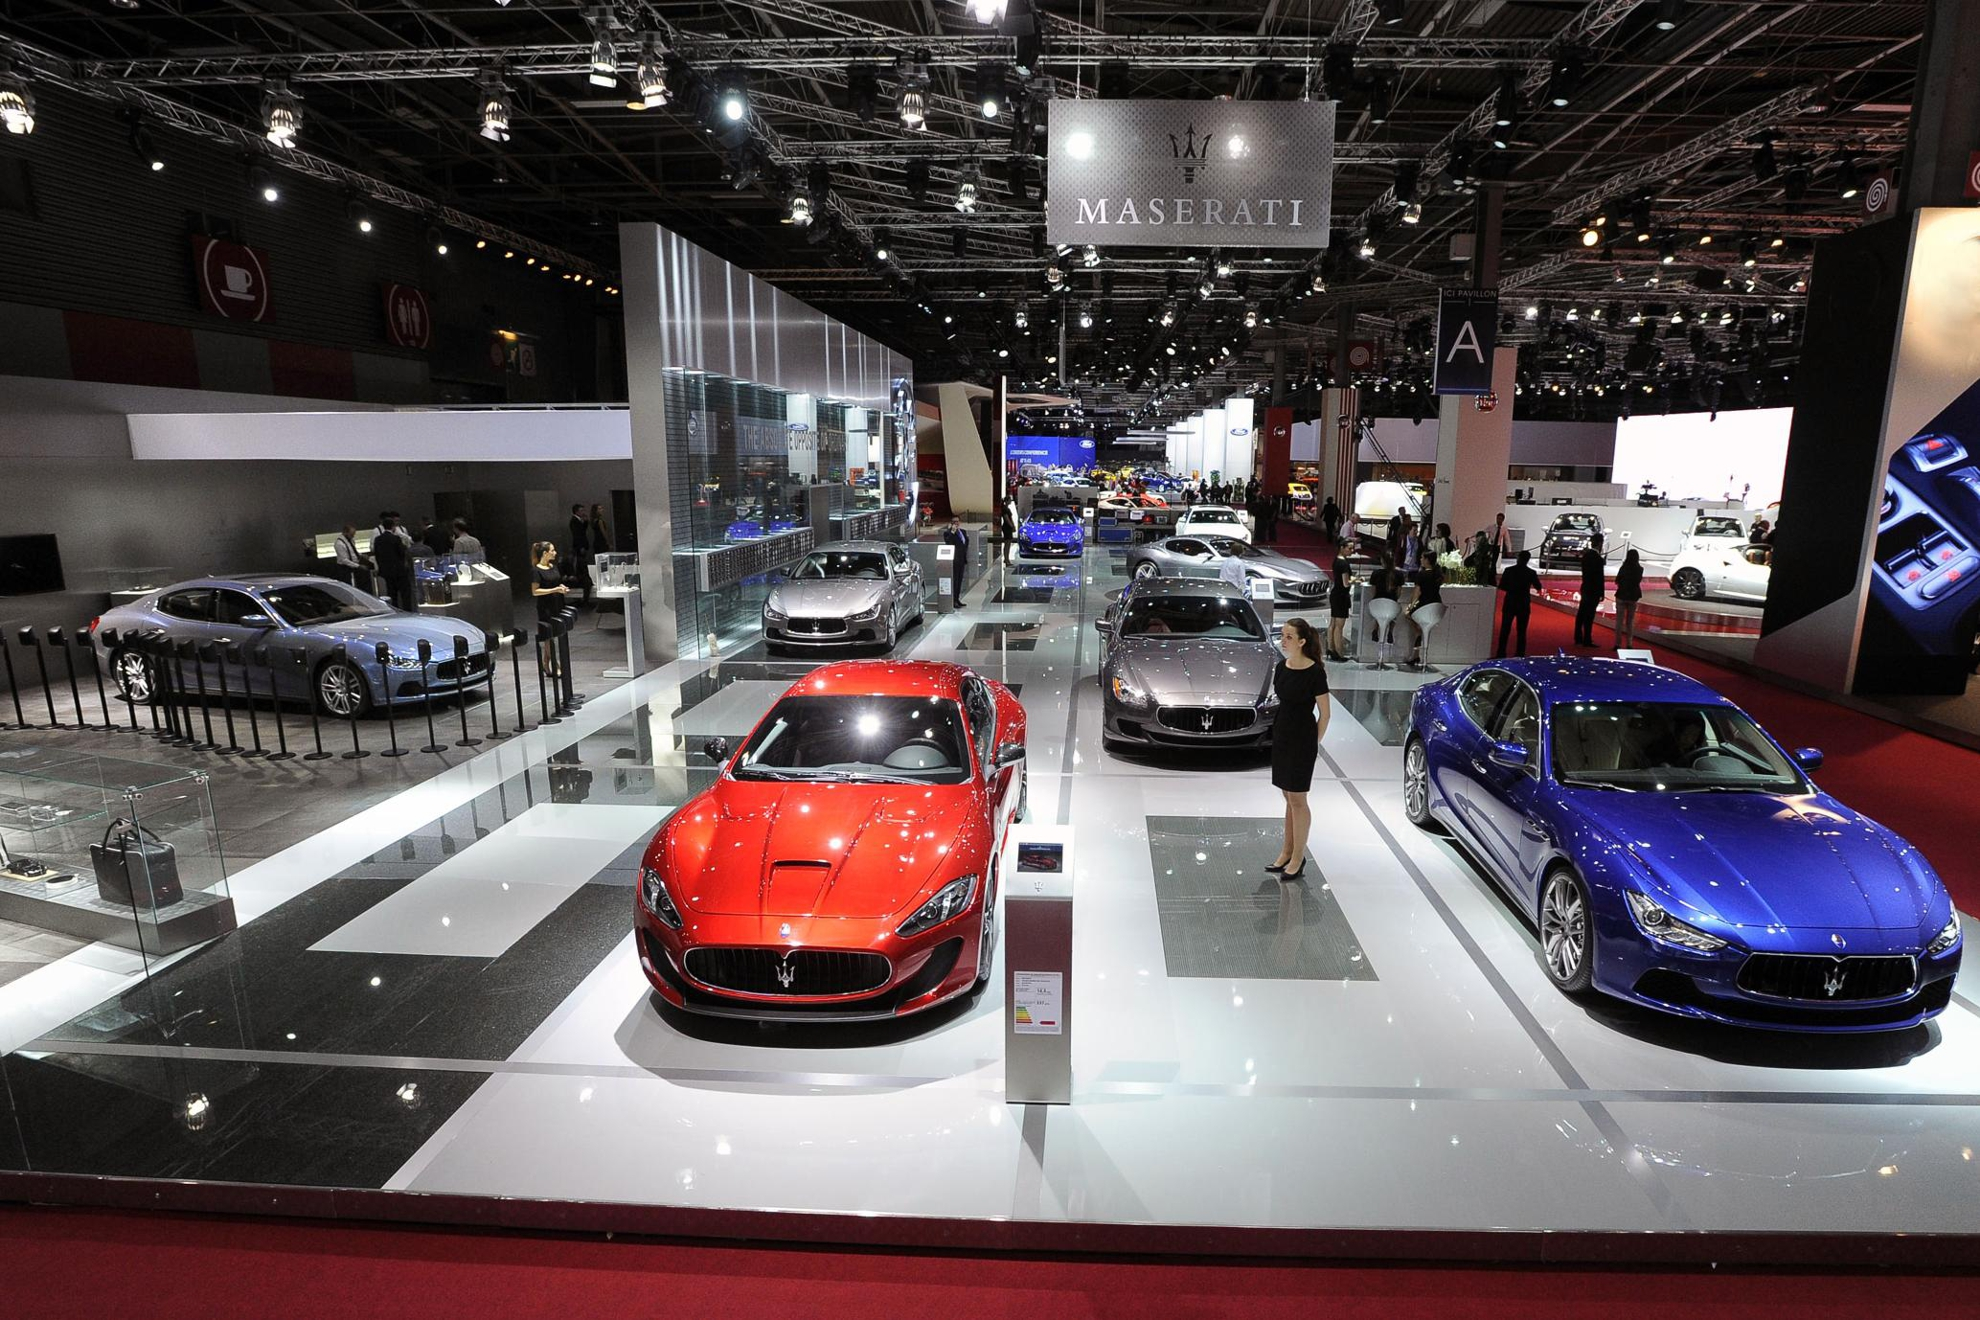 https://3d-car-shows.com/wp-content/uploads/2014/10/ParisMotorShow.jpg